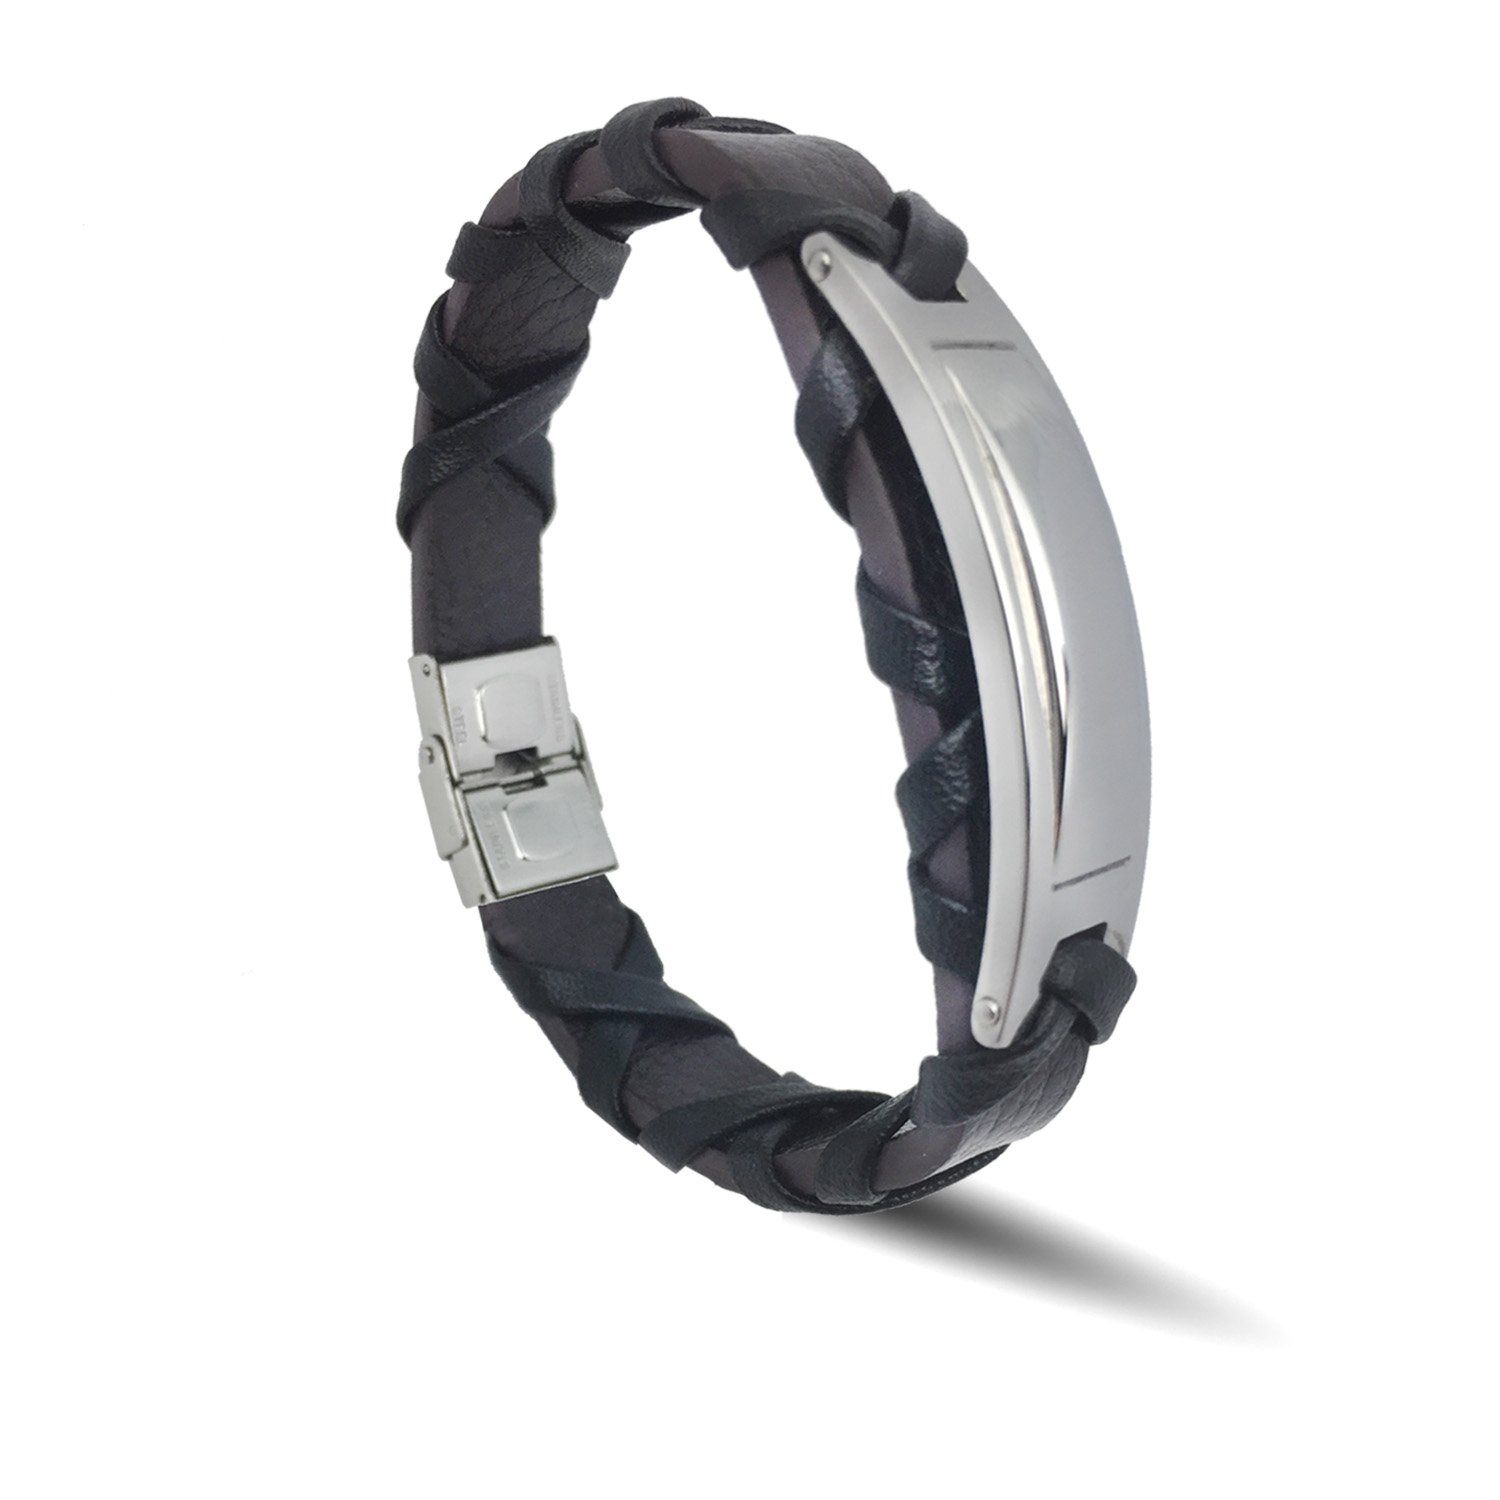 ZD-Jewelry Mens Leather Bracelet , Black leather Bracelets ,White stainless steel buckle,8.5 inch Ethnic Tribal Bracelets, Bracelet For men Leather Wristbands Fashion Accessories